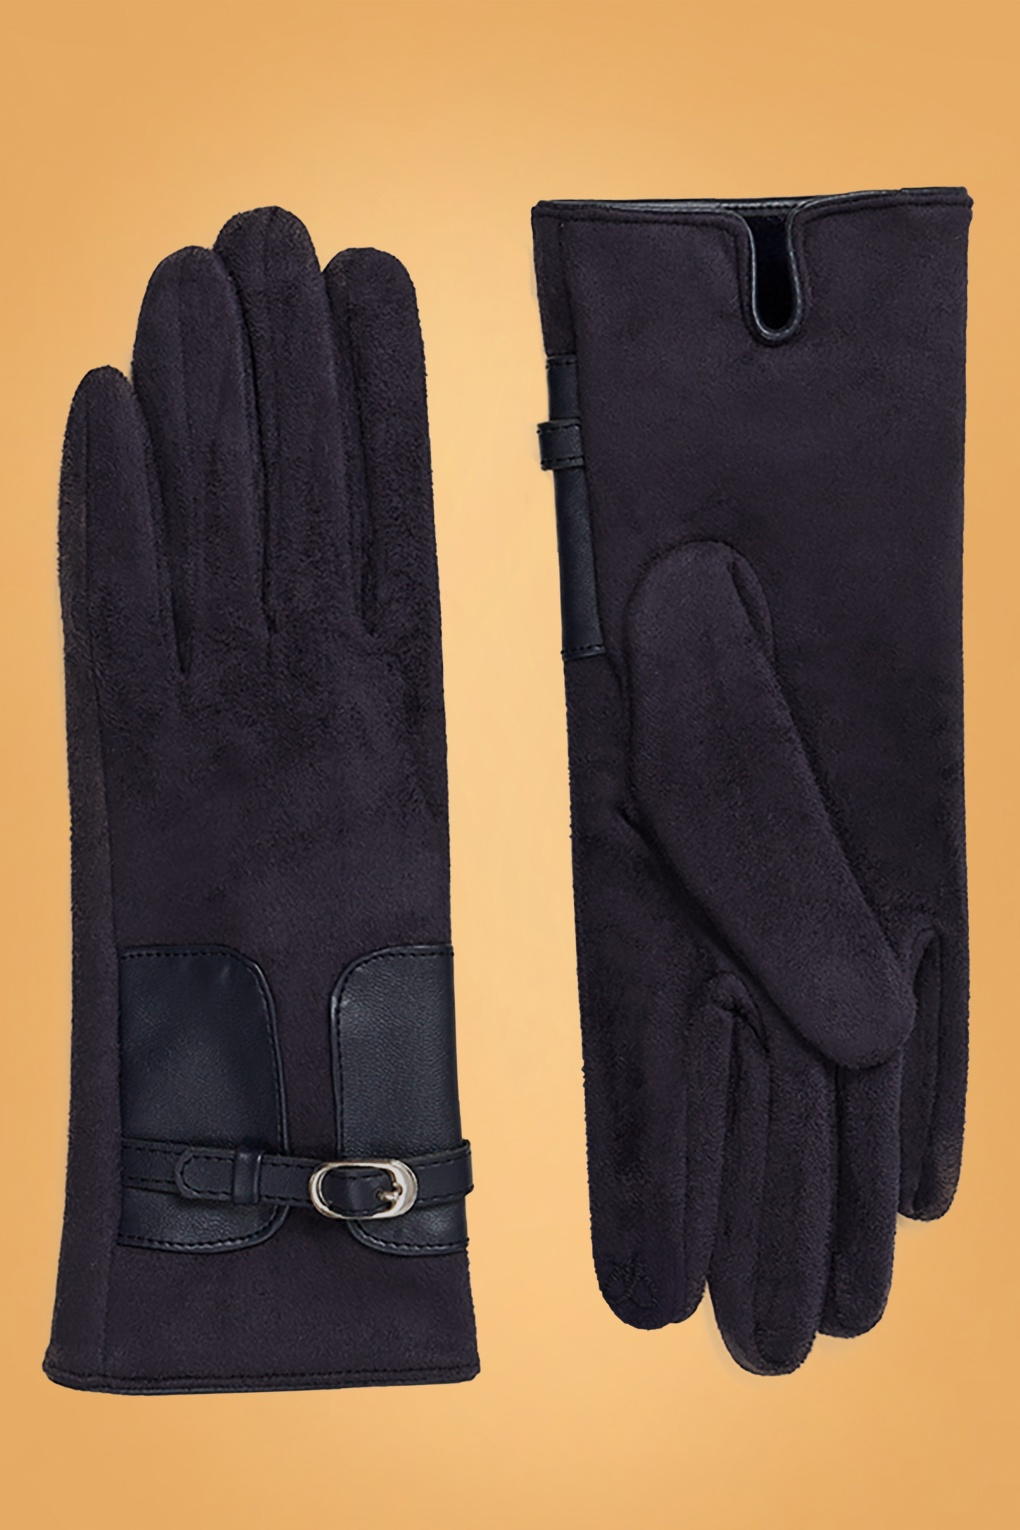 Vintage Style Gloves- Long, Wrist, Evening, Day, Leather, Lace 50s Kimberly Gloves in Navy £22.40 AT vintagedancer.com